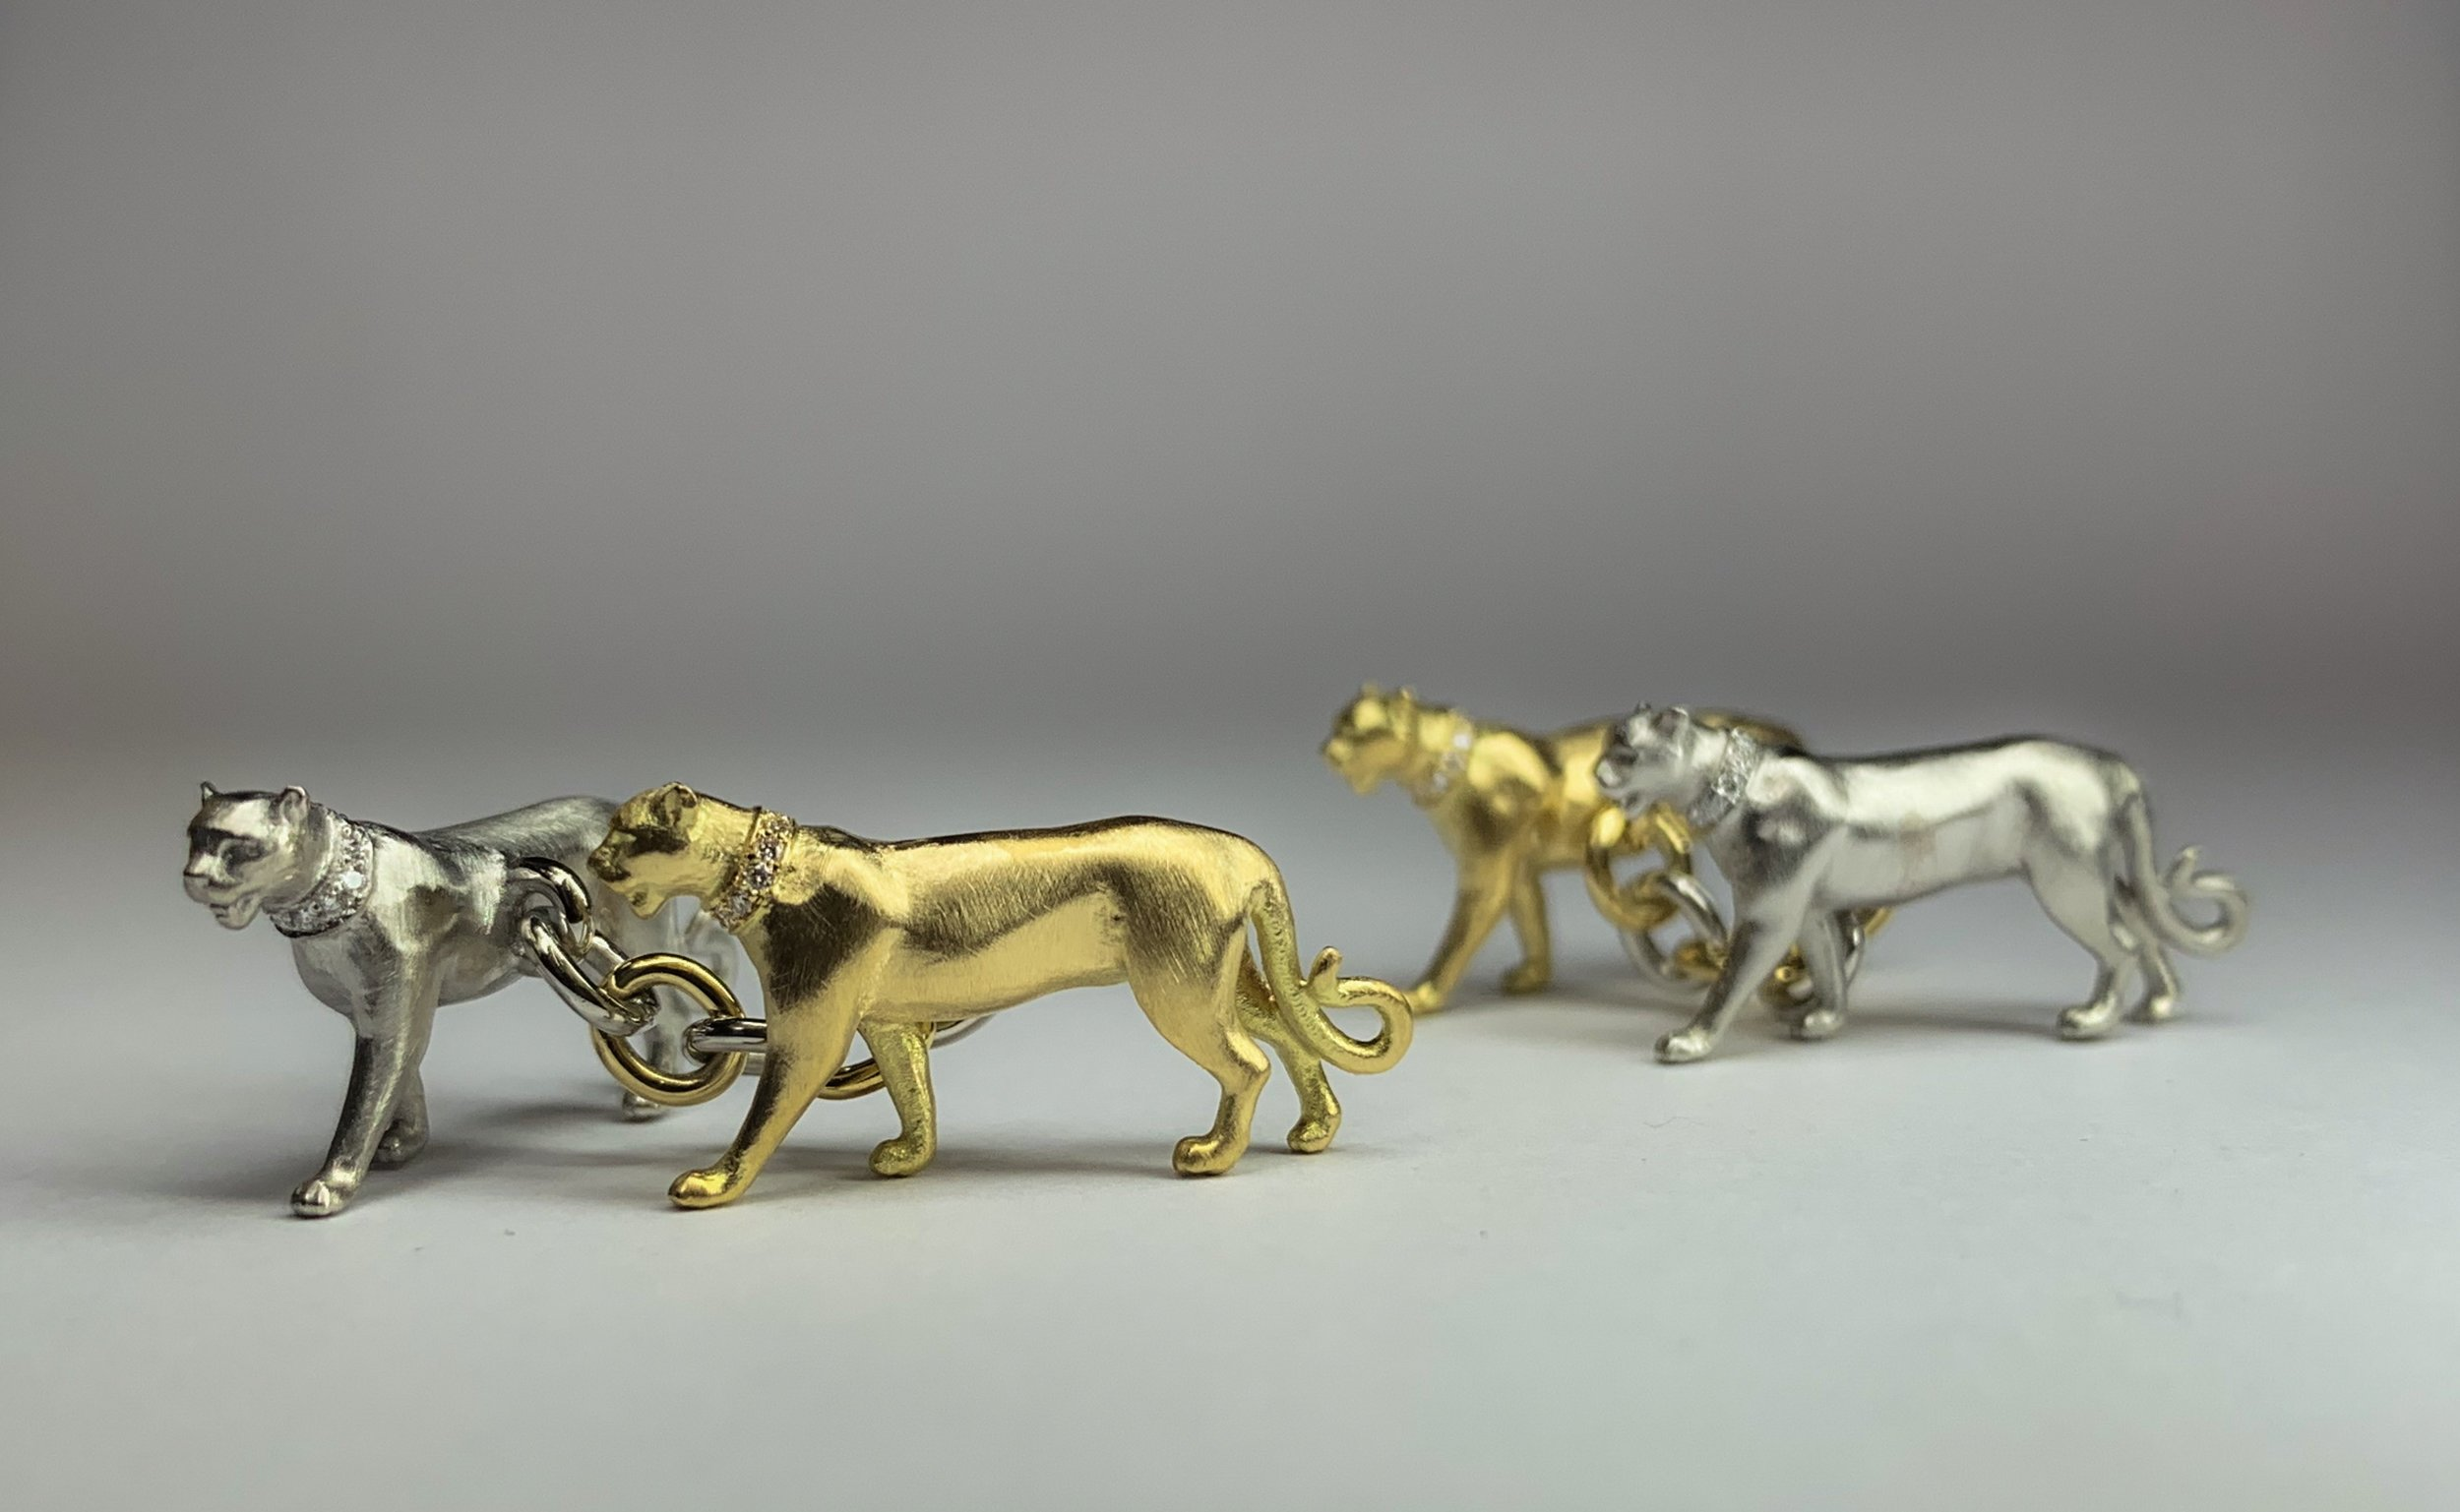 18ct yellow gold and platinum panther cufflinks. Each collar is set with ten 0.7mm diamonds and each diamond has 57 facets! Incredible precision on something so small. Made in Chichester, England.